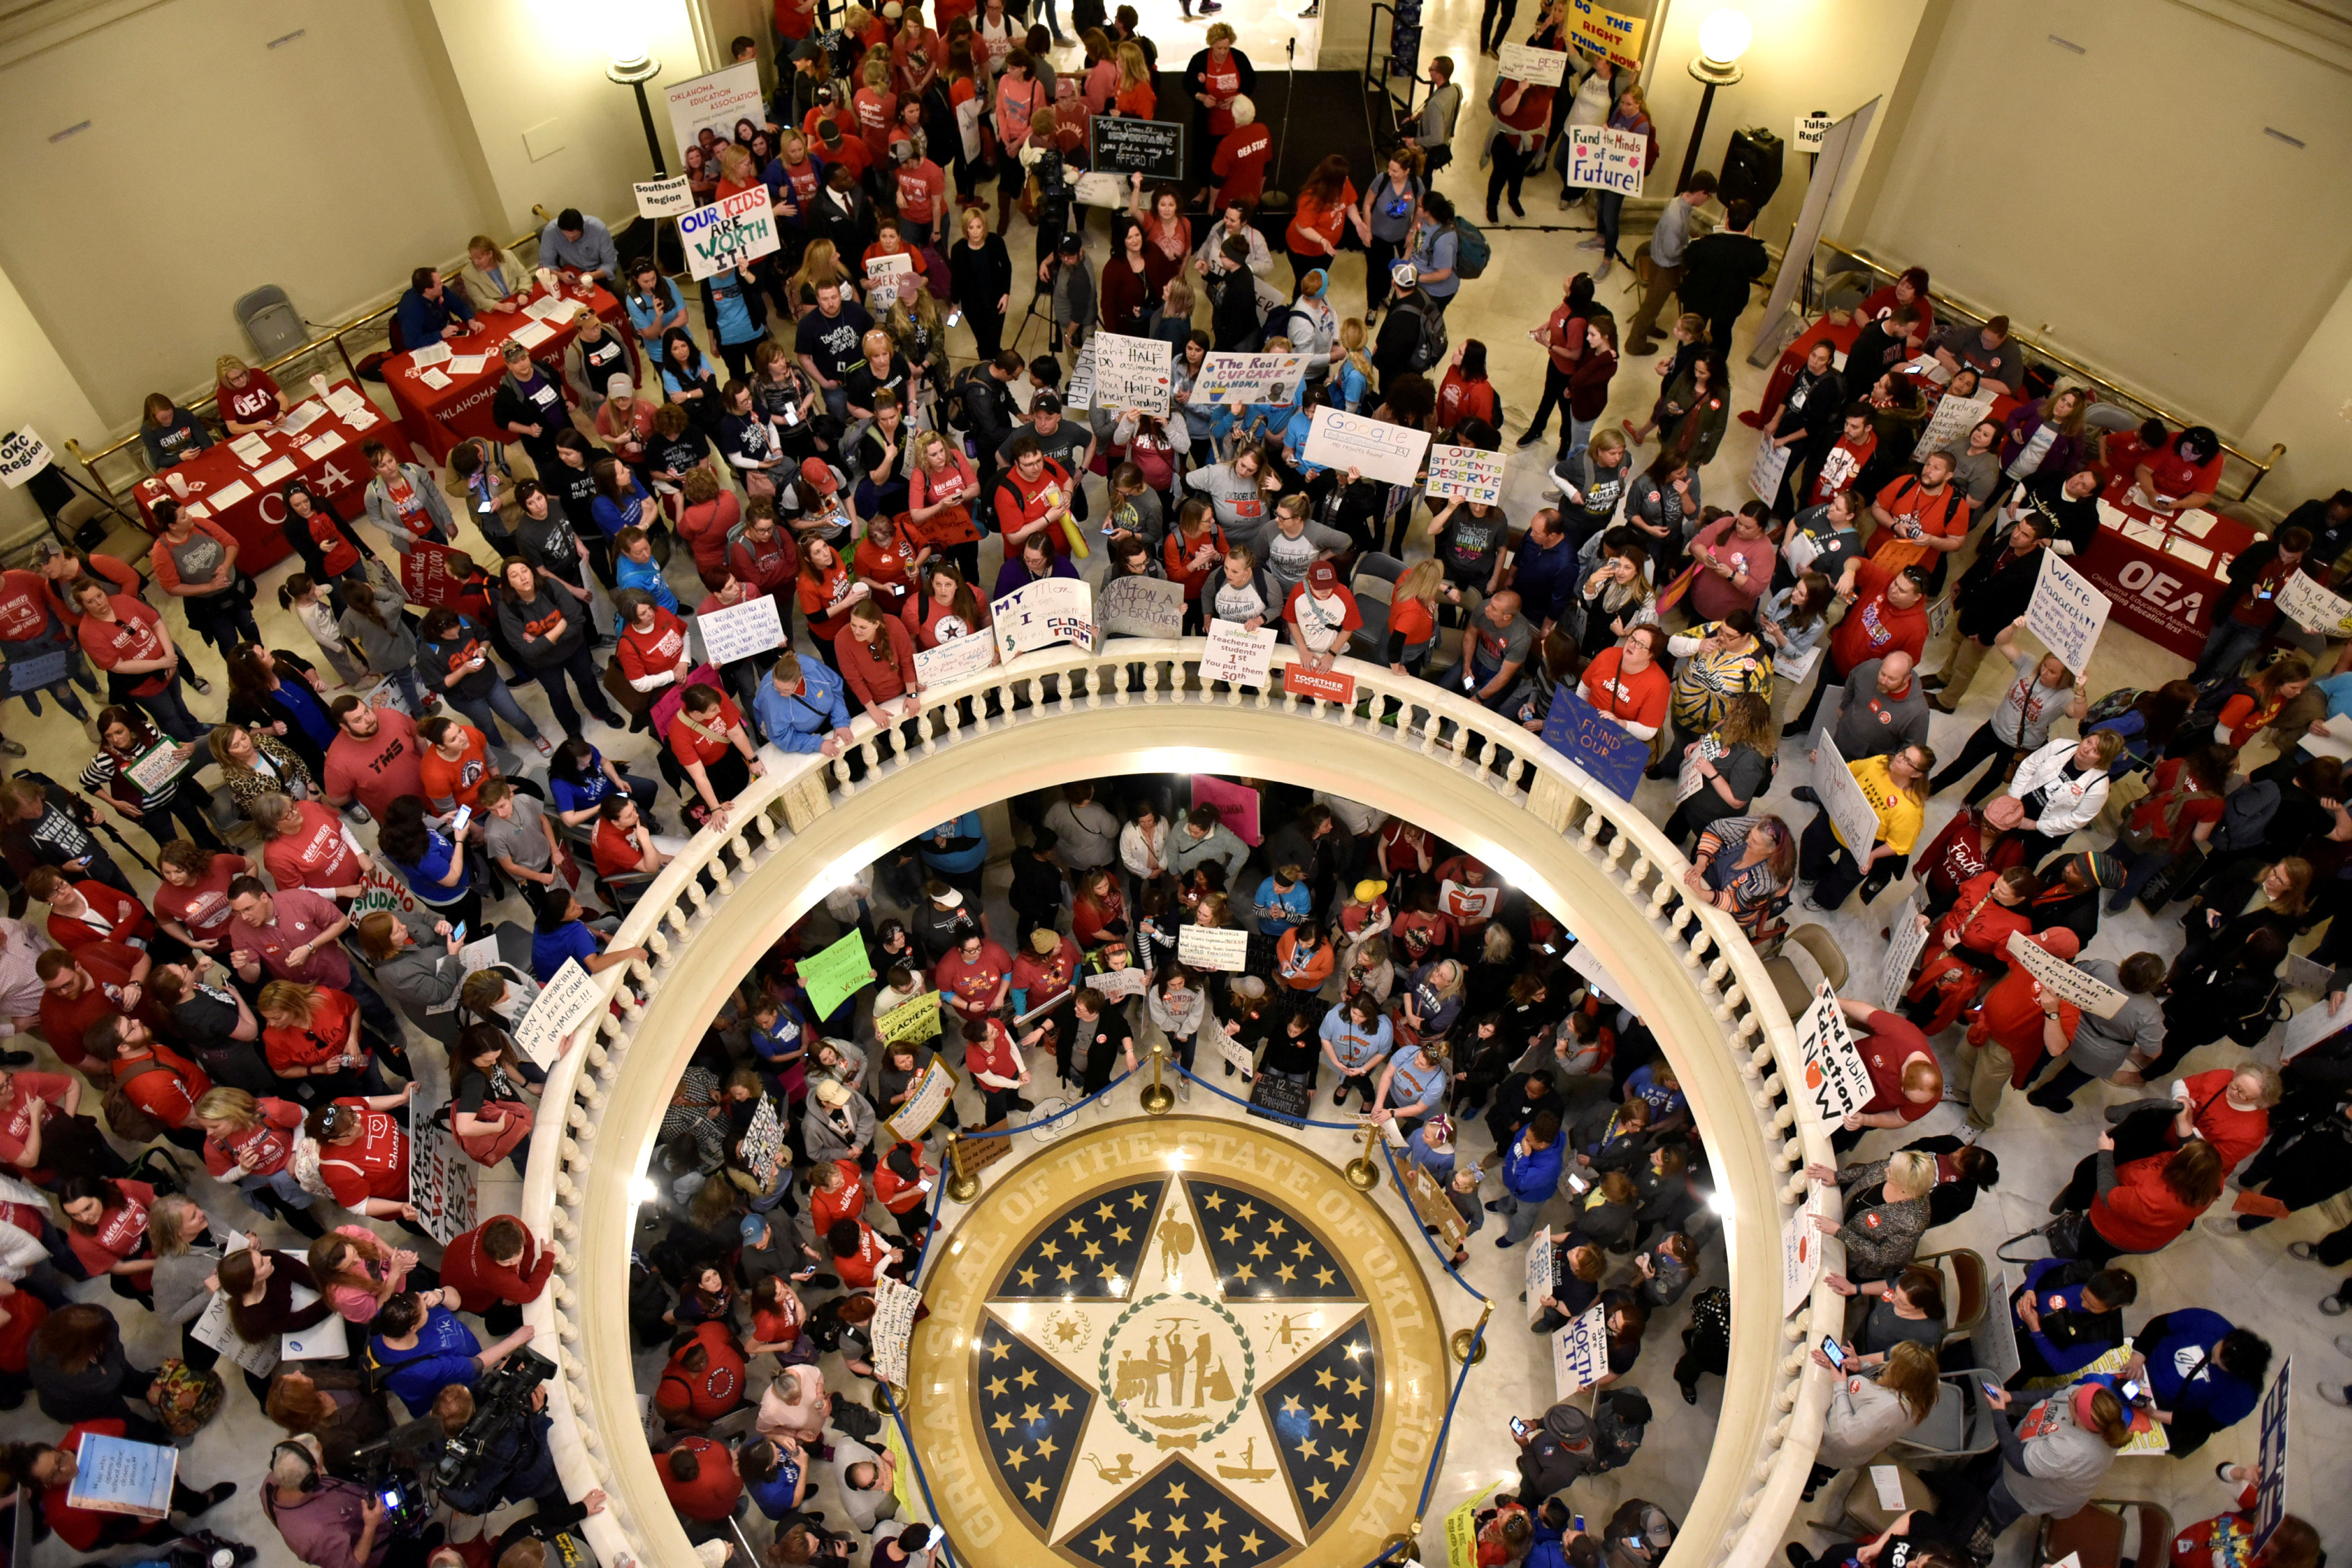 FILE PHOTO - Teachers pack the state Capitol rotunda to capacity, on the second day of a teacher walkout, to demand higher pay and more funding for education, in Oklahoma City, Oklahoma, U.S., April 3, 2018. REUTERS/Nick Oxford